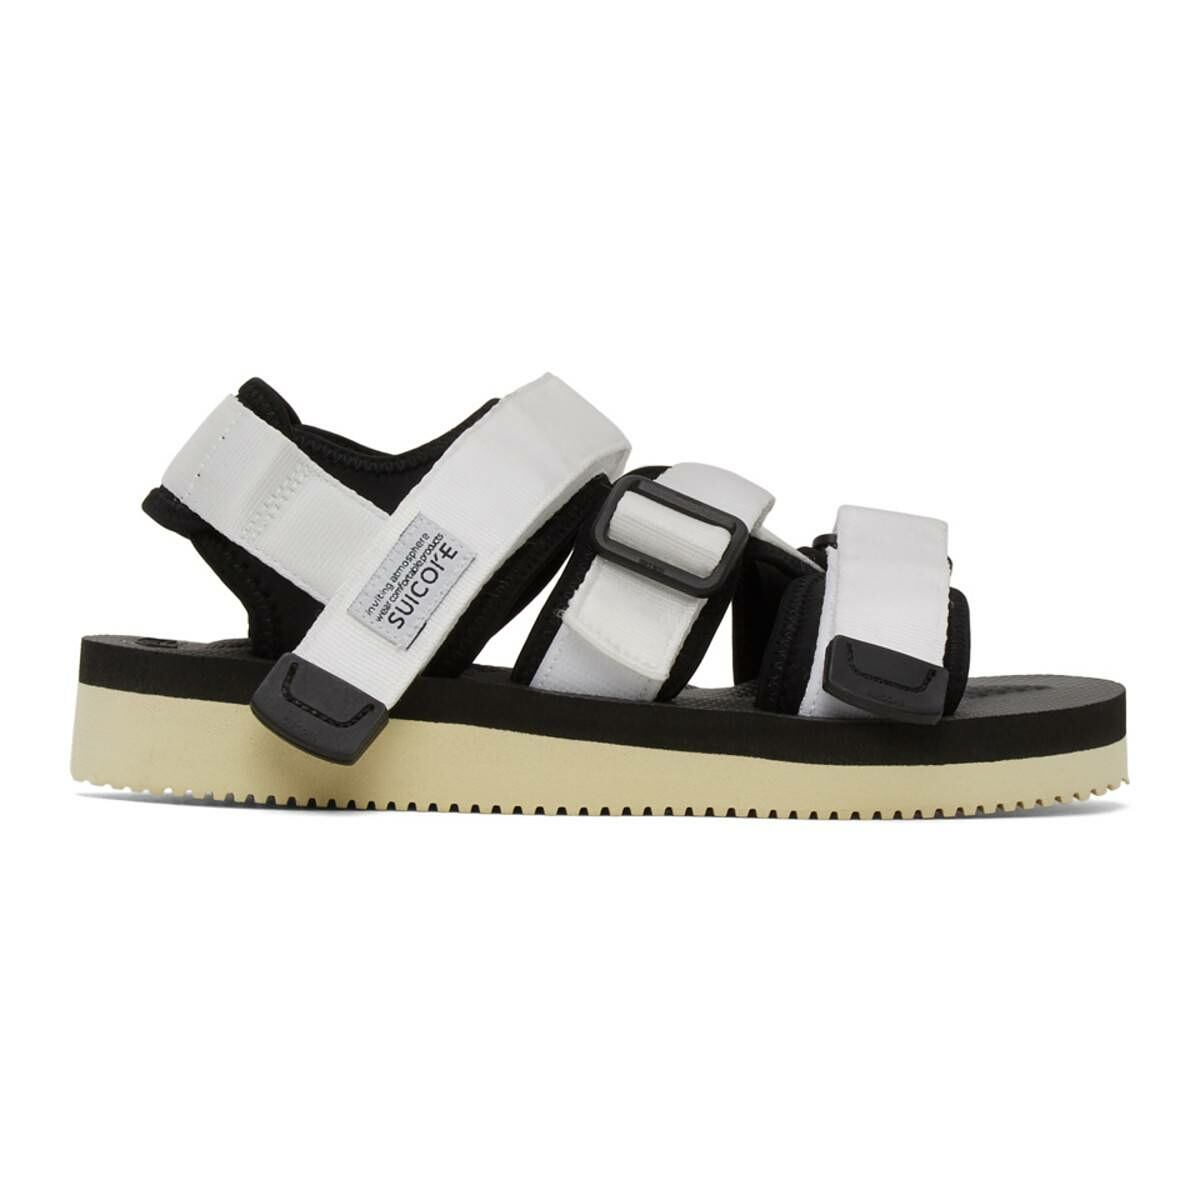 Suicoke White Kisee-V Sandals Ssense USA MEN Men SHOES Mens SANDALS